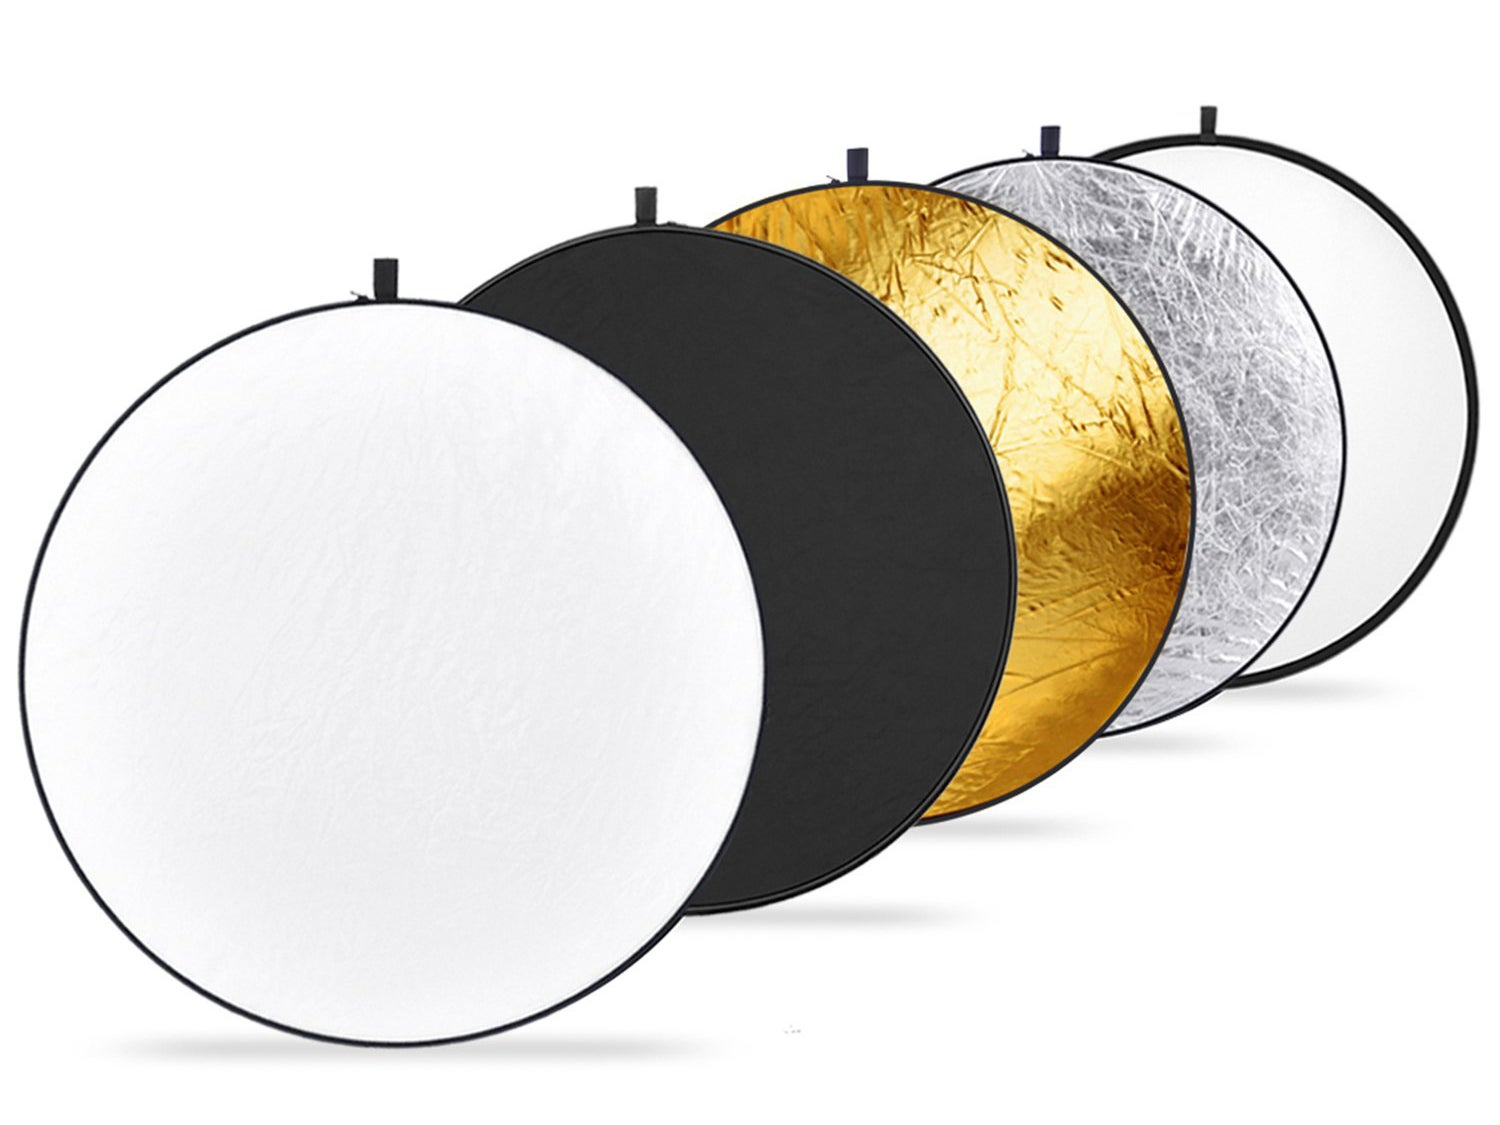 5-in-1 collapsible reflector